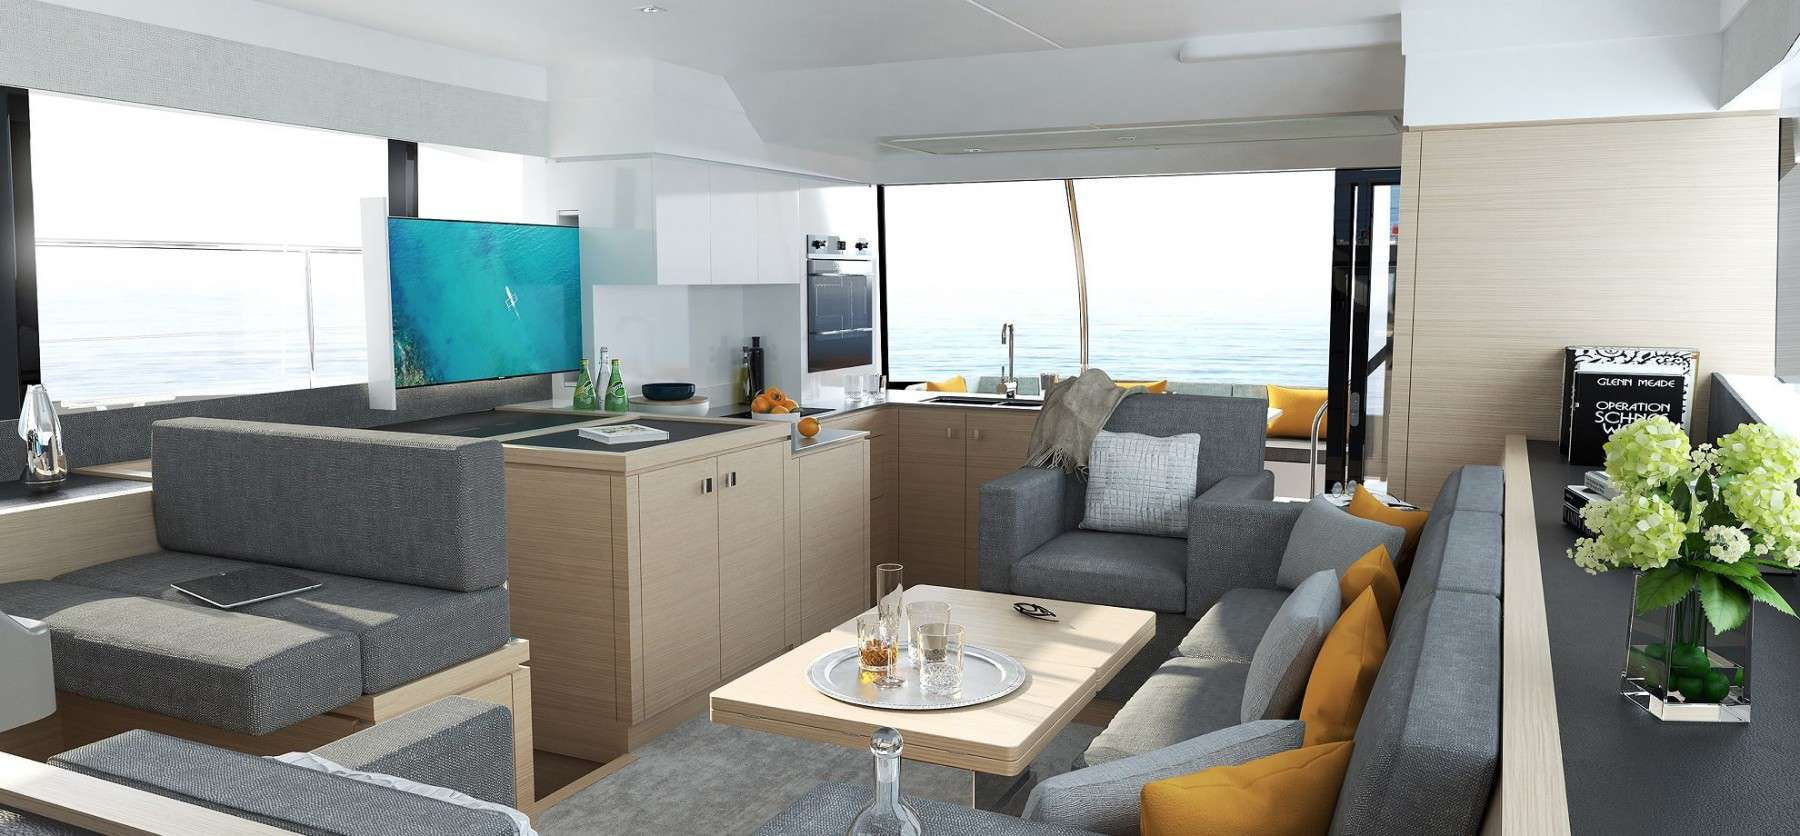 The saloon of a Fountaine Pajot Motor yacht 40 has a hint of homely atmosphere in it with modern design and nice details